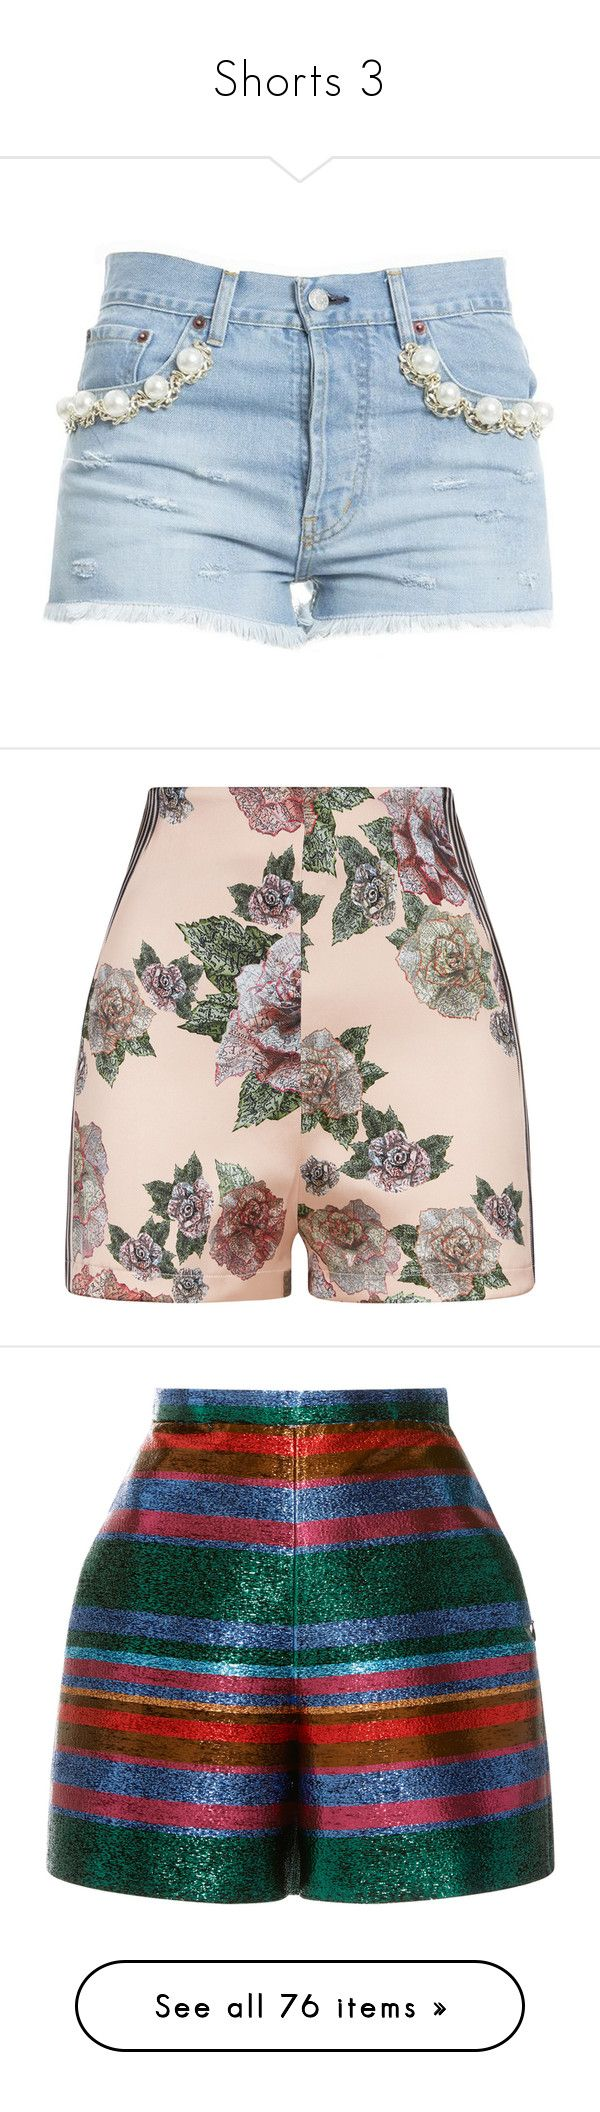 """""""Shorts 3"""" by laumariborche ❤ liked on Polyvore featuring shorts, light blue, womenclothingjeans, light blue shorts, blue cotton shorts, bottoms, pants, green, high rise shorts and high-rise shorts"""